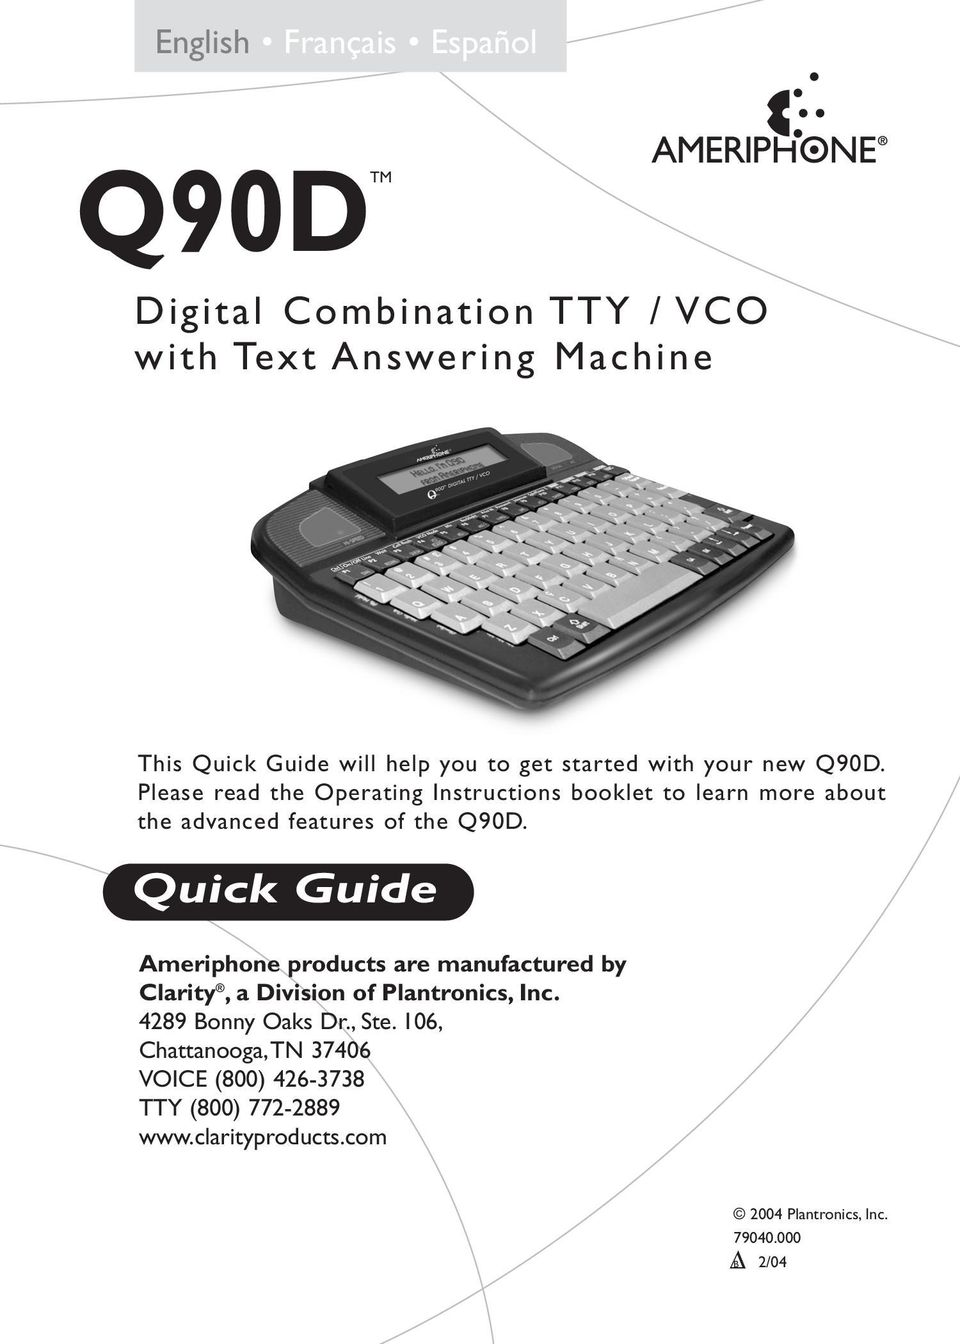 Please read the Operating Instructions booklet to learn more about the advanced features of the Q90D.